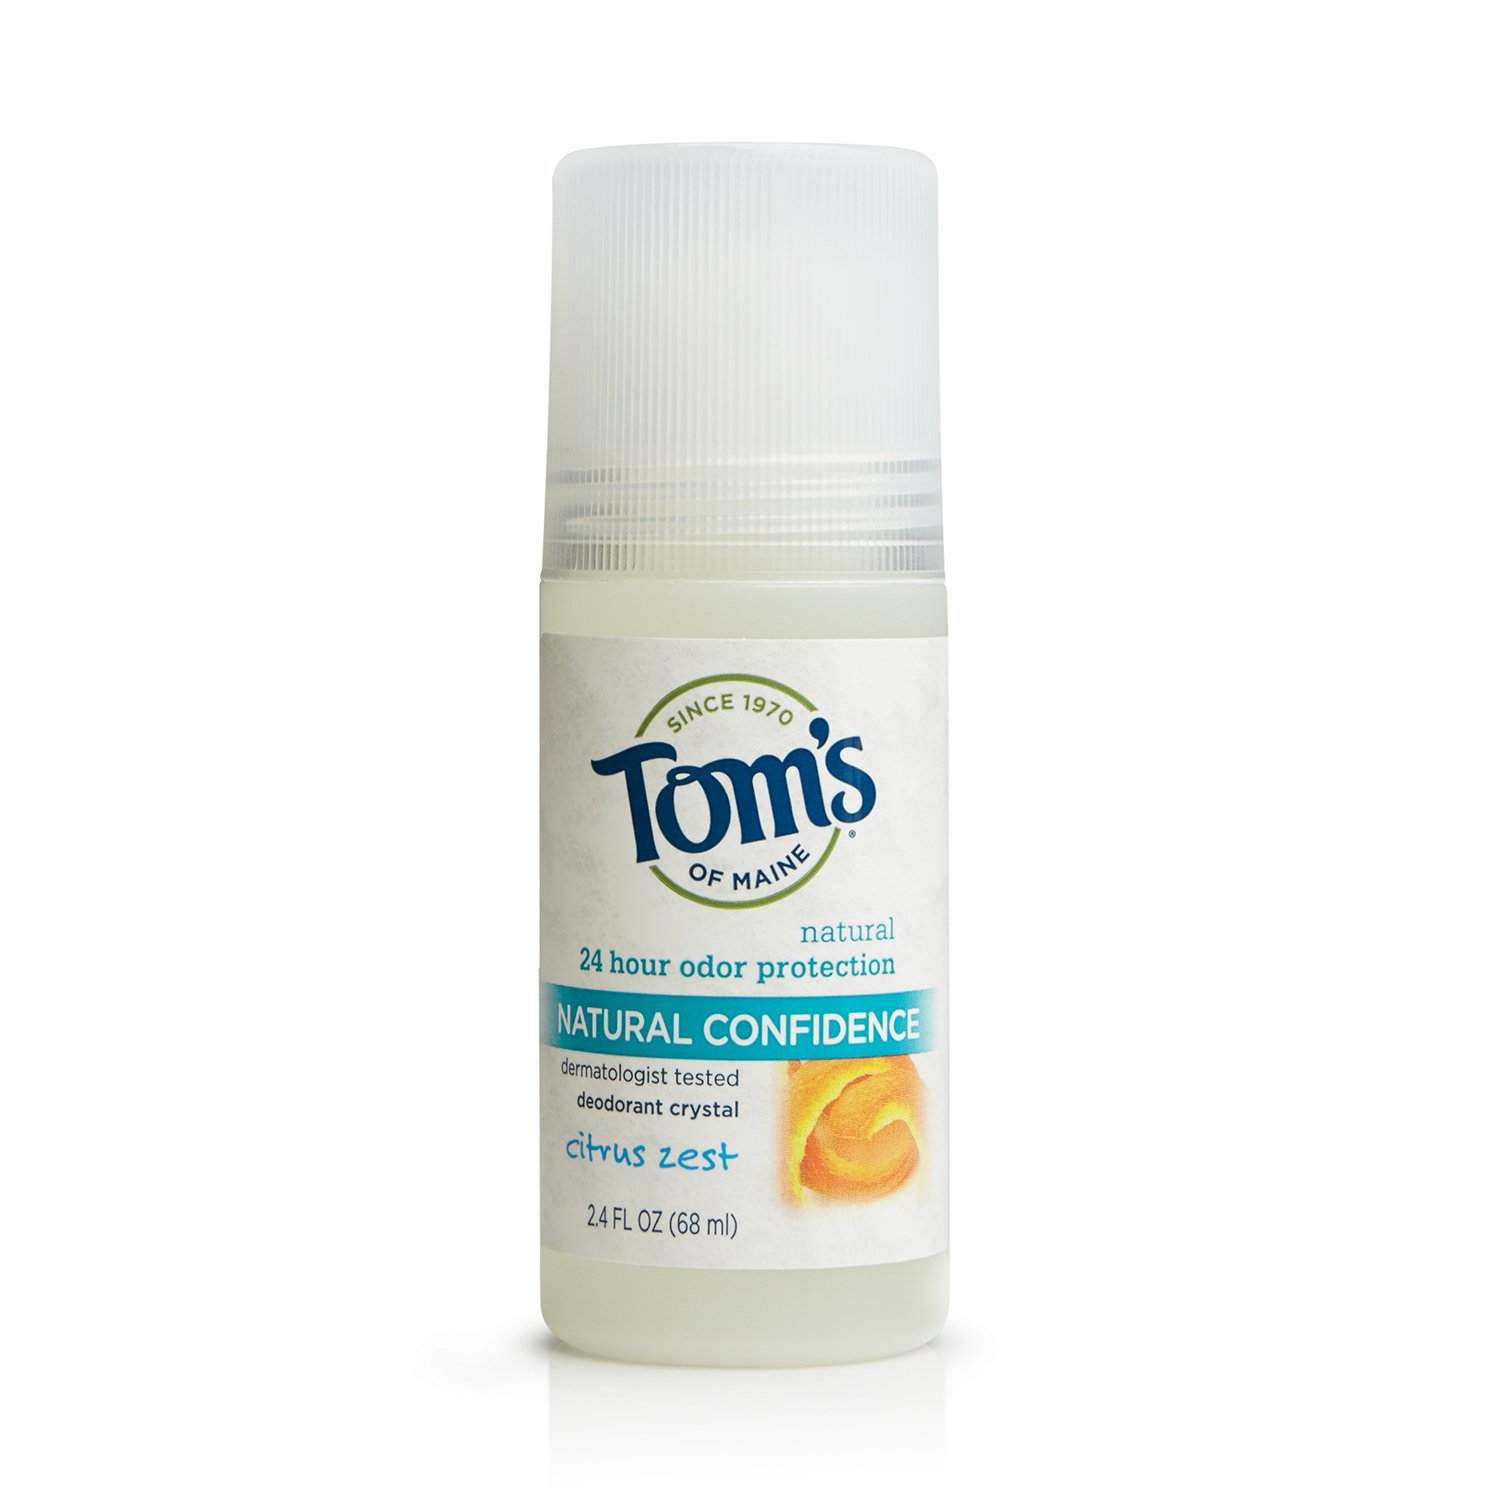 Tom's of Maine 683802 Natural Confidence Deodorant Crystal, Citrus Zest, 2.4 Ounce, 18 Count